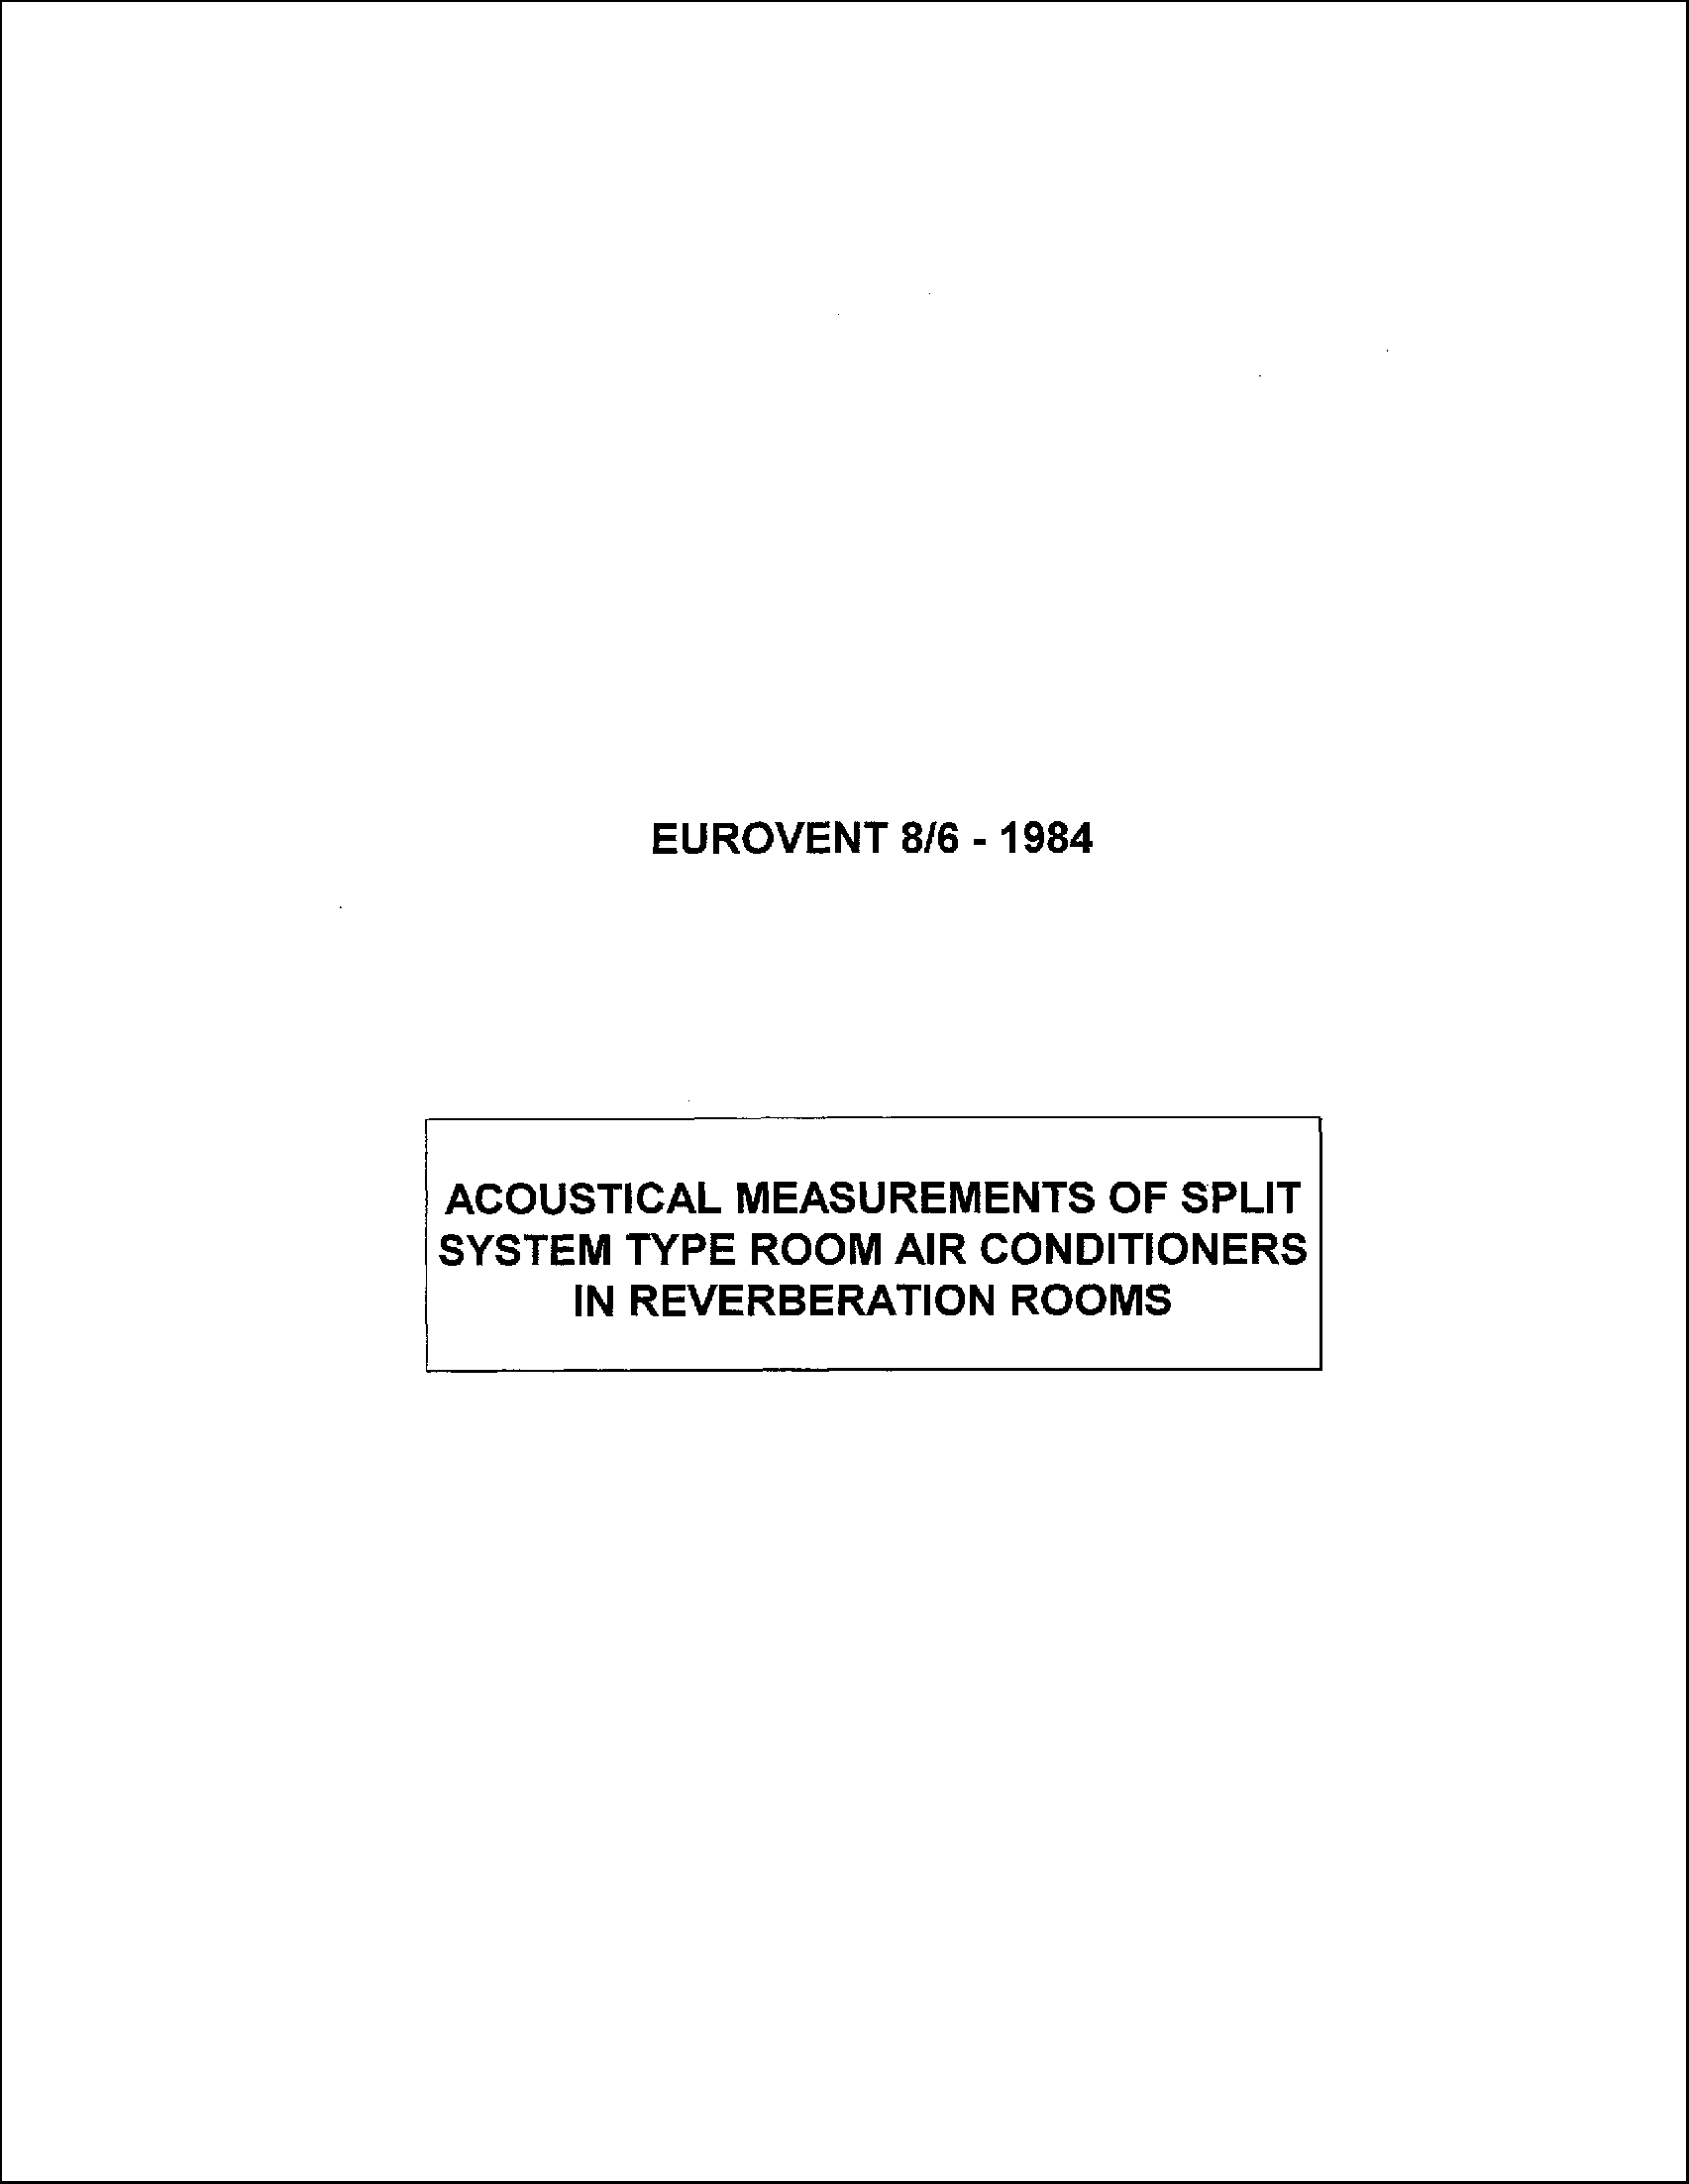 1984 - Acoustical measurements of split system type room air conditioners in reverberation rooms